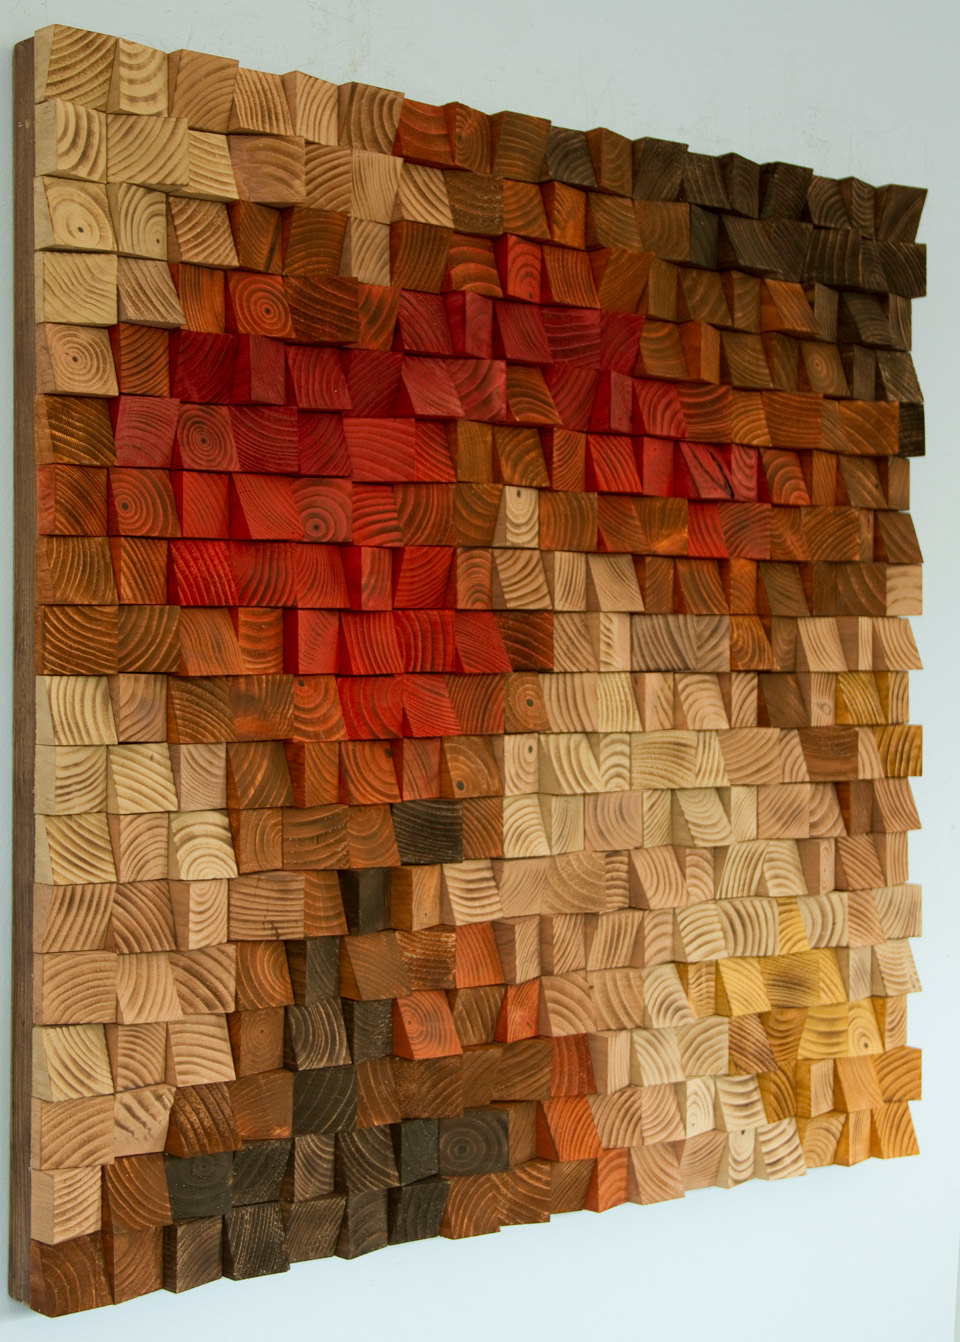 Large Rustic Wood Wall Art Wood Wall Sculpture Abstract